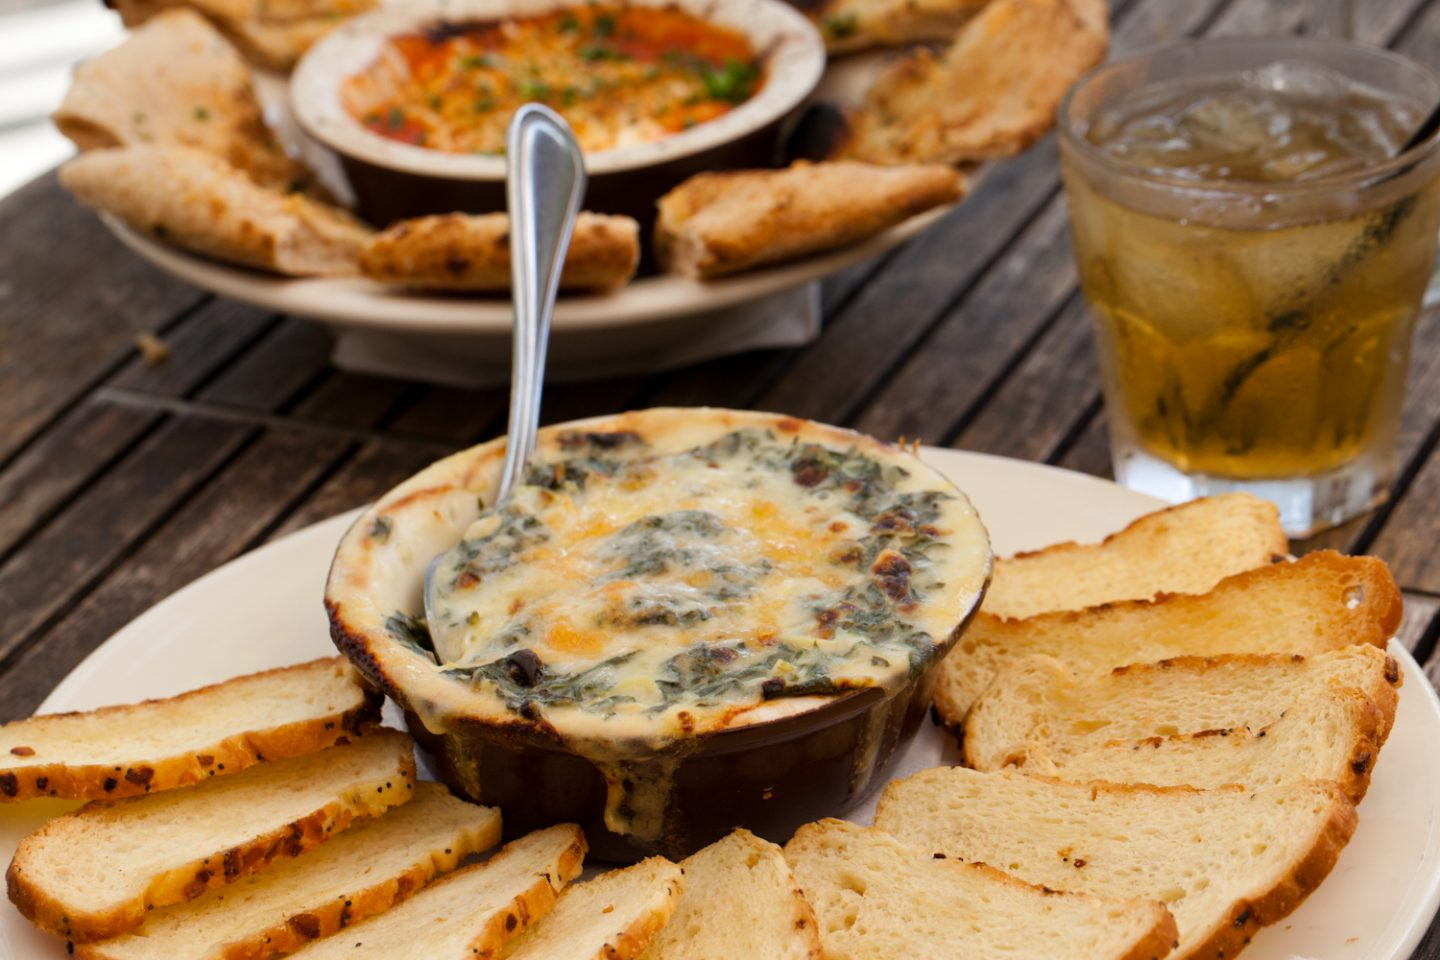 Wildfire Kale and Artichoke Dip